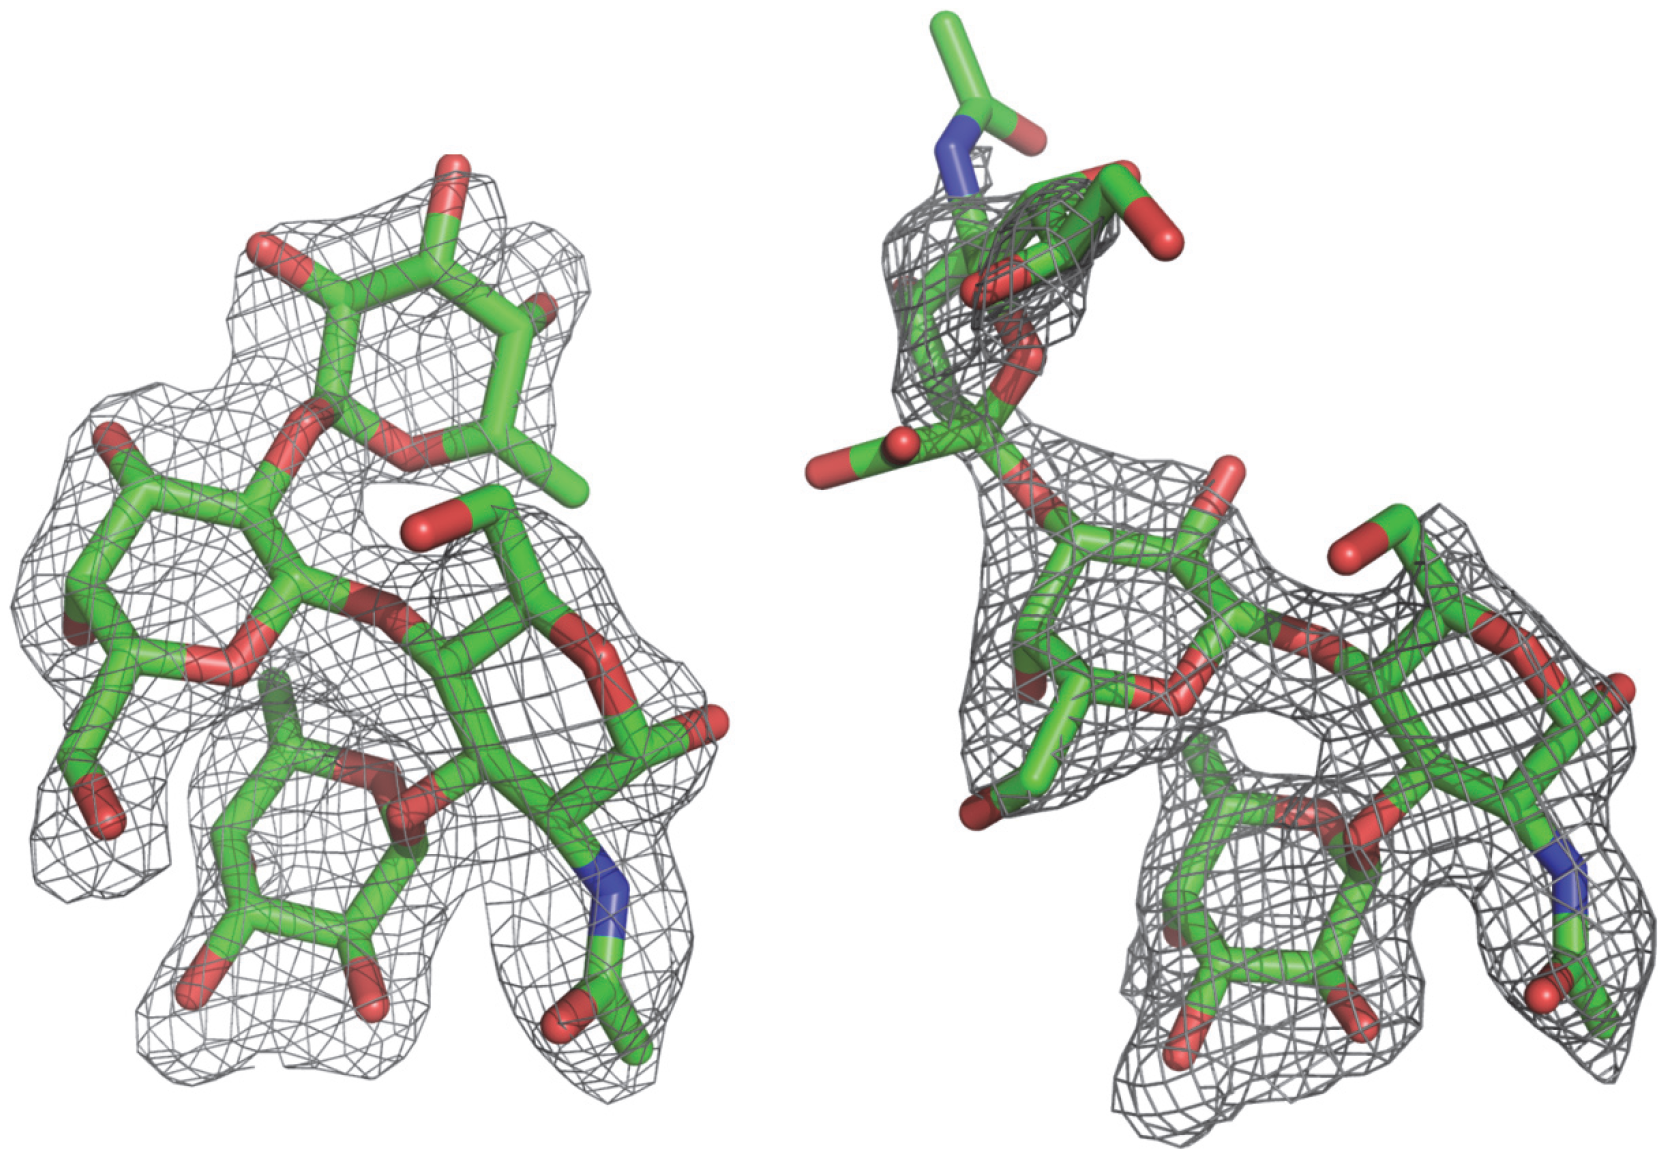 (Fo-Fc) omit electron density map of the Lewis y and 3′-sialyl Lewis x tetrasaccharide.